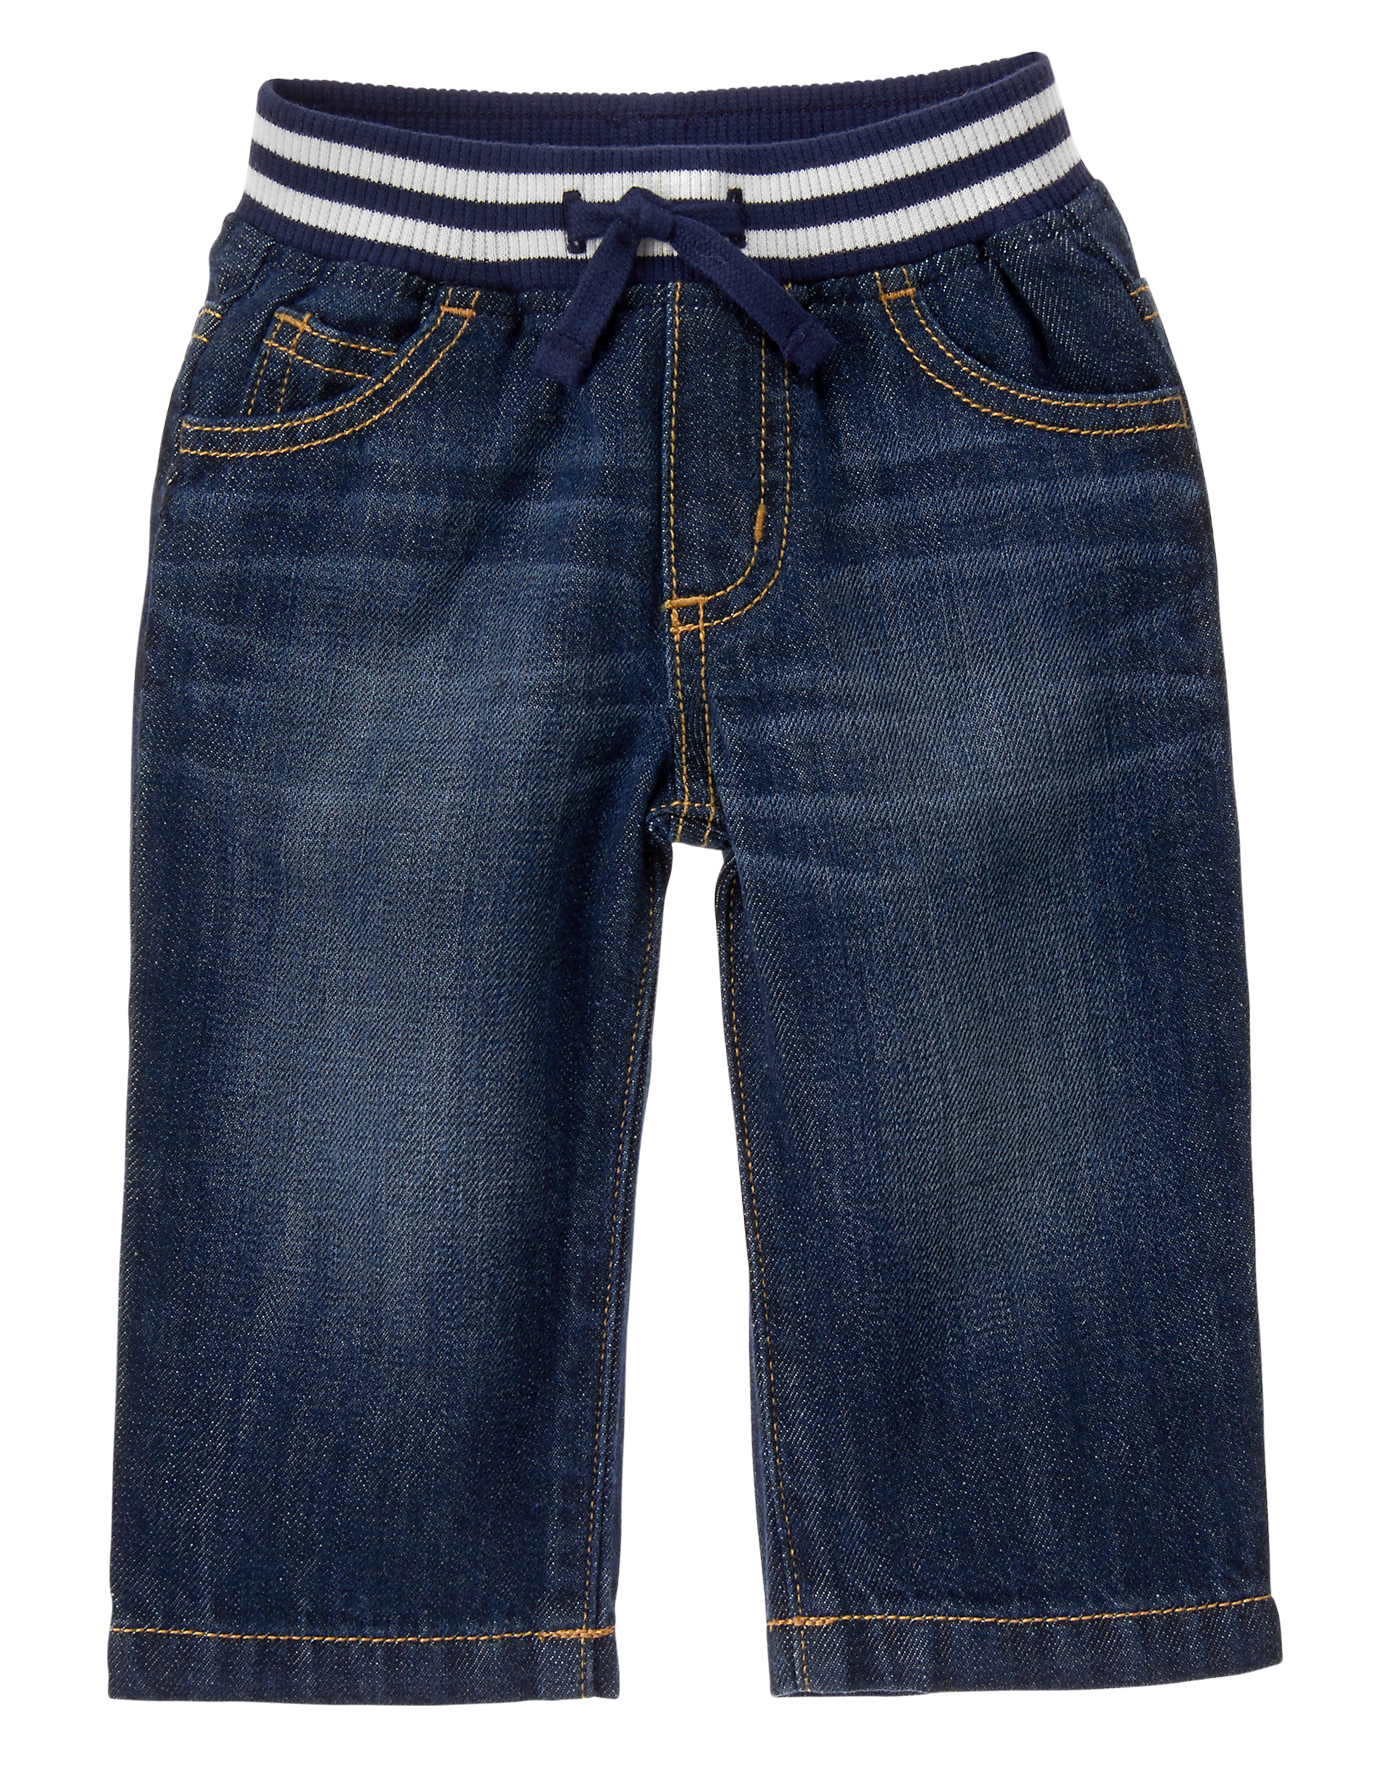 Pull-On Jeans | Baby/Kids Boys Clothing, Outfits Sets, Socks ...